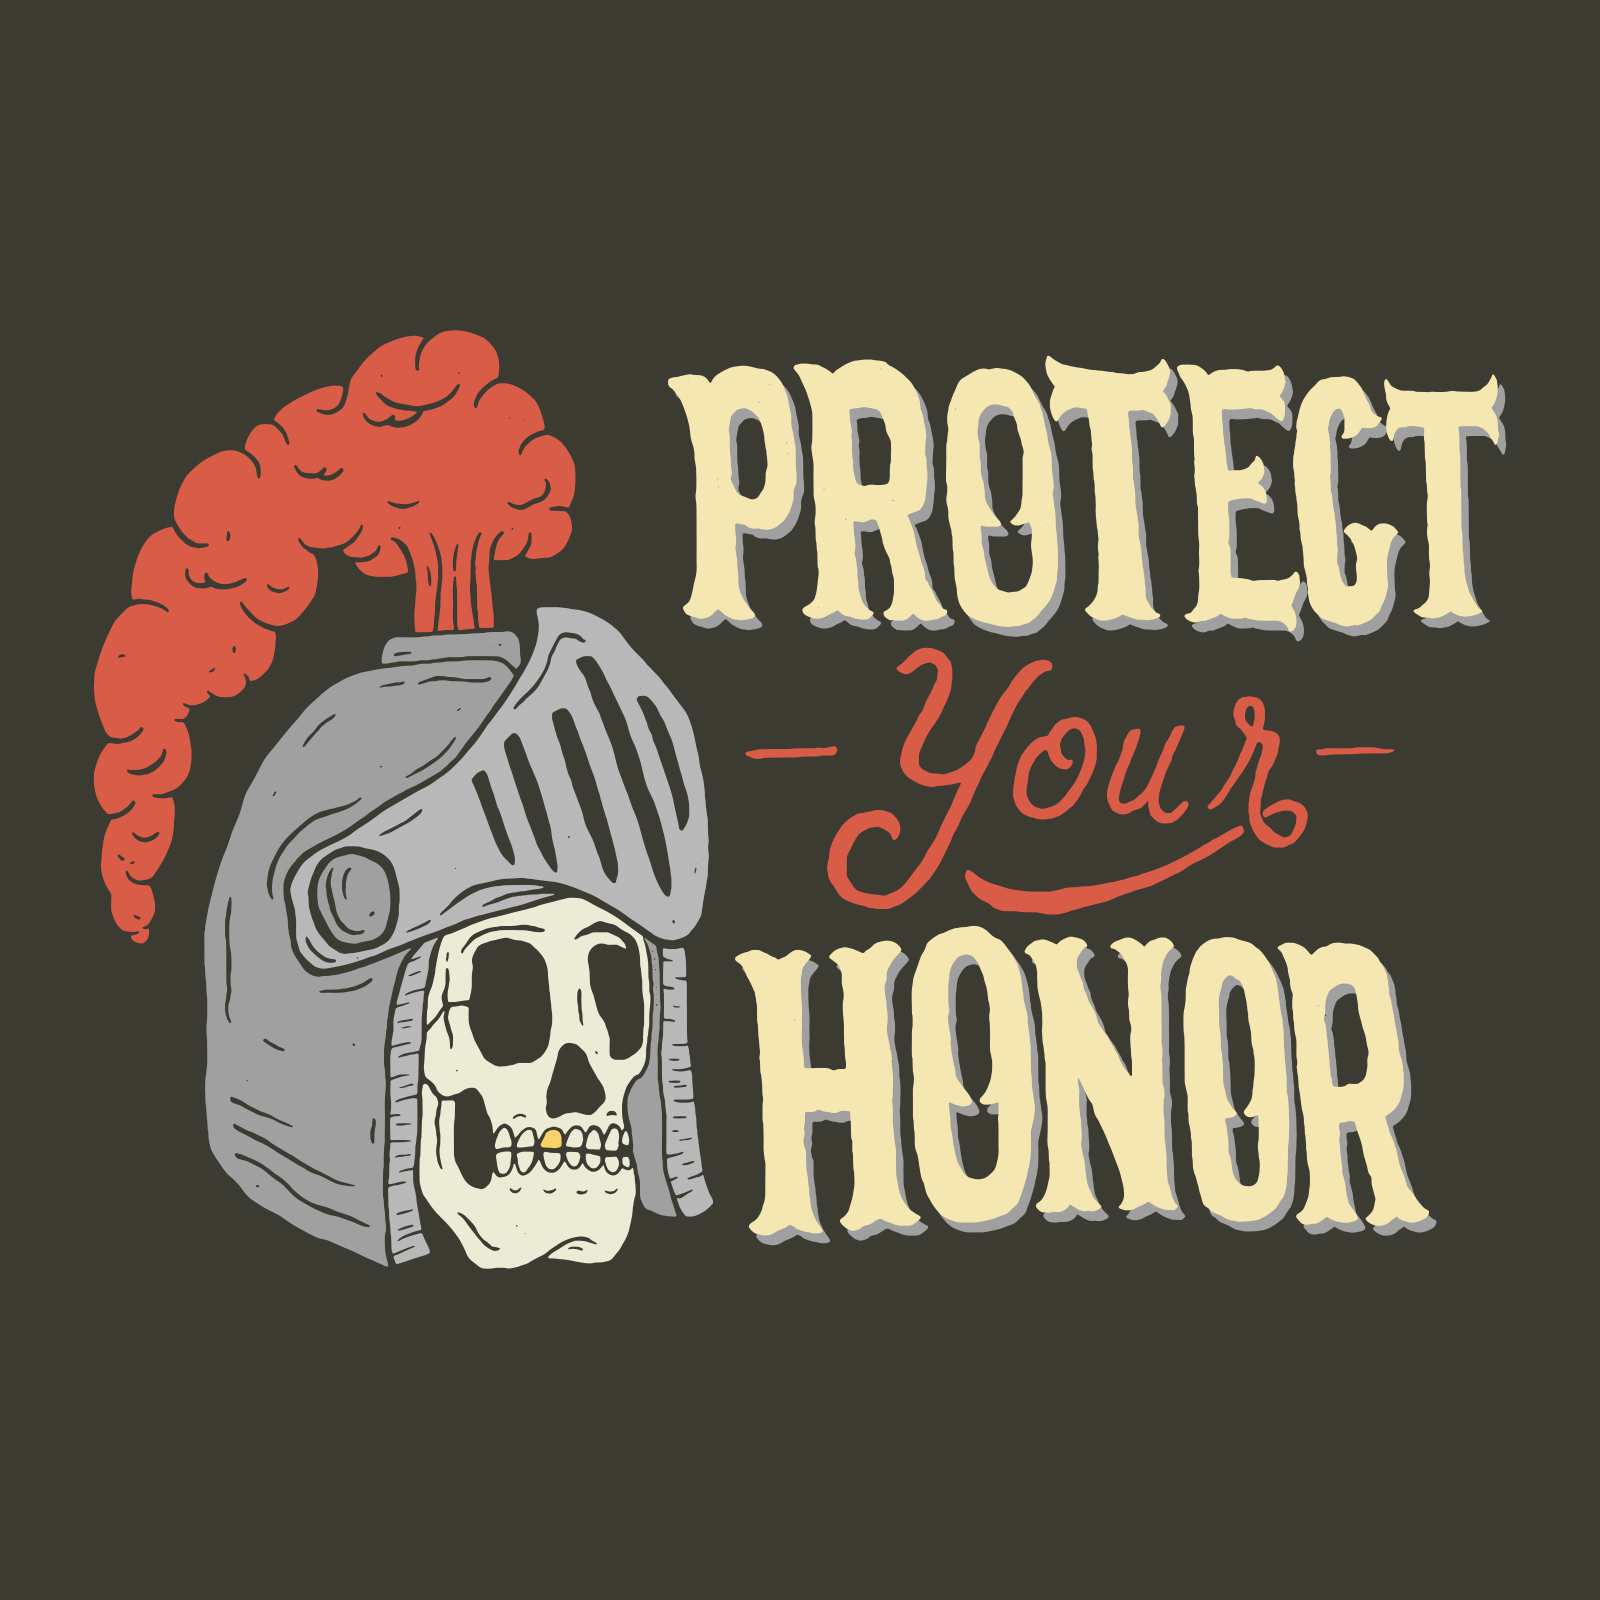 Protect Your Honor - Richard Damm